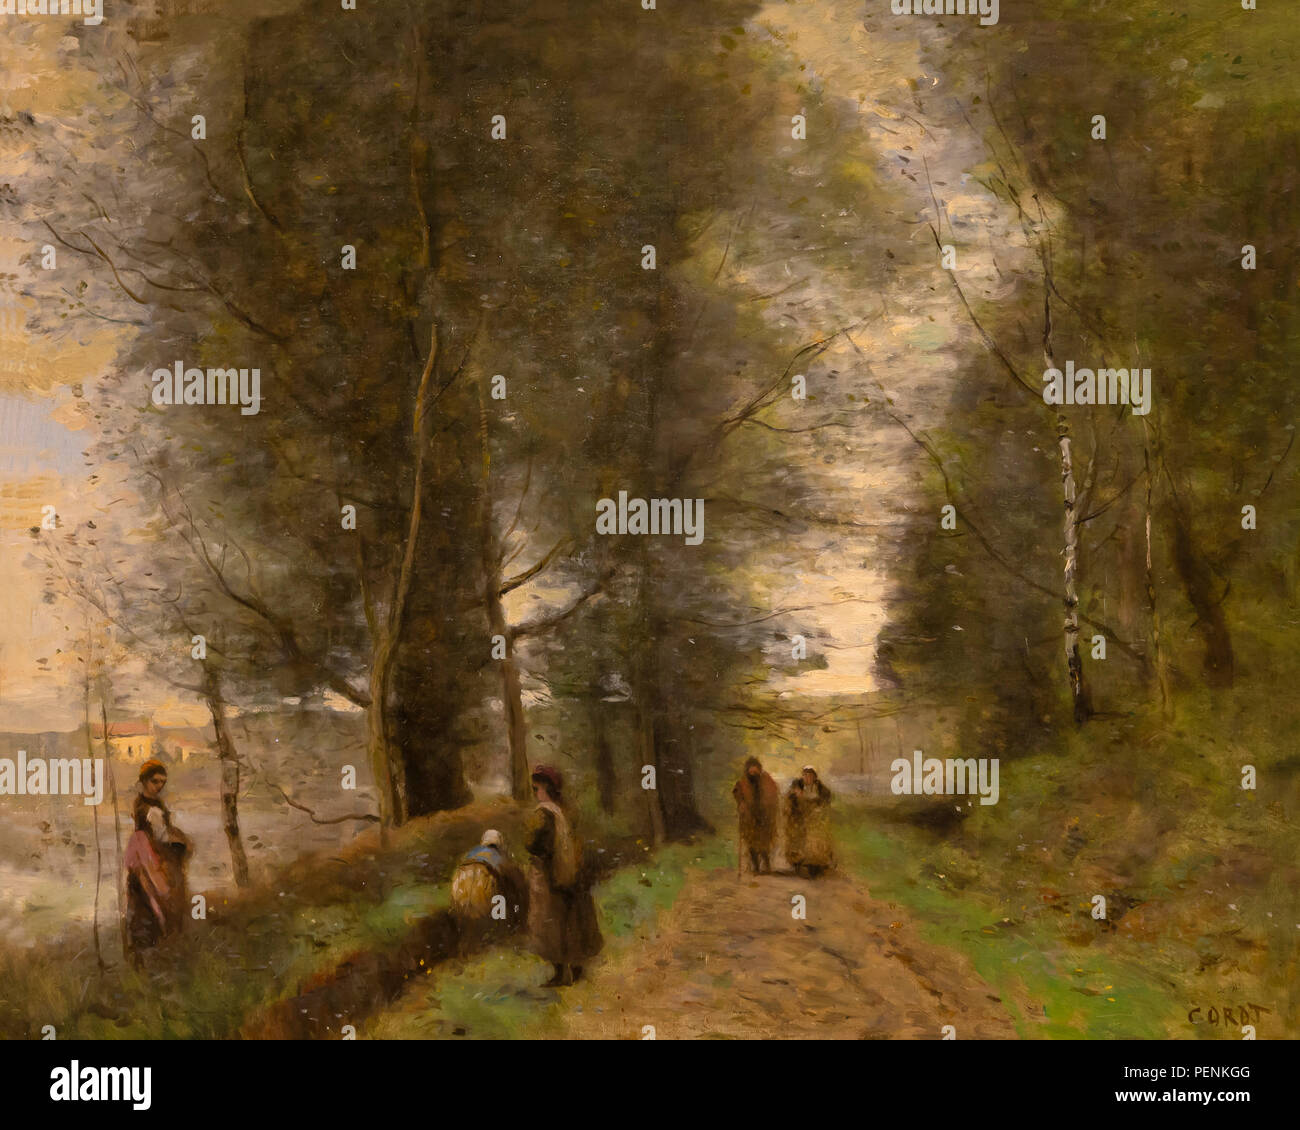 Ville d'Avray, Woodland Path Bordering the Pond, Jean-Baptistse-Camille Corot, 1872, Indianapolis Museum of Art, Indianapolis, Indiana, USA, North Ame - Stock Image